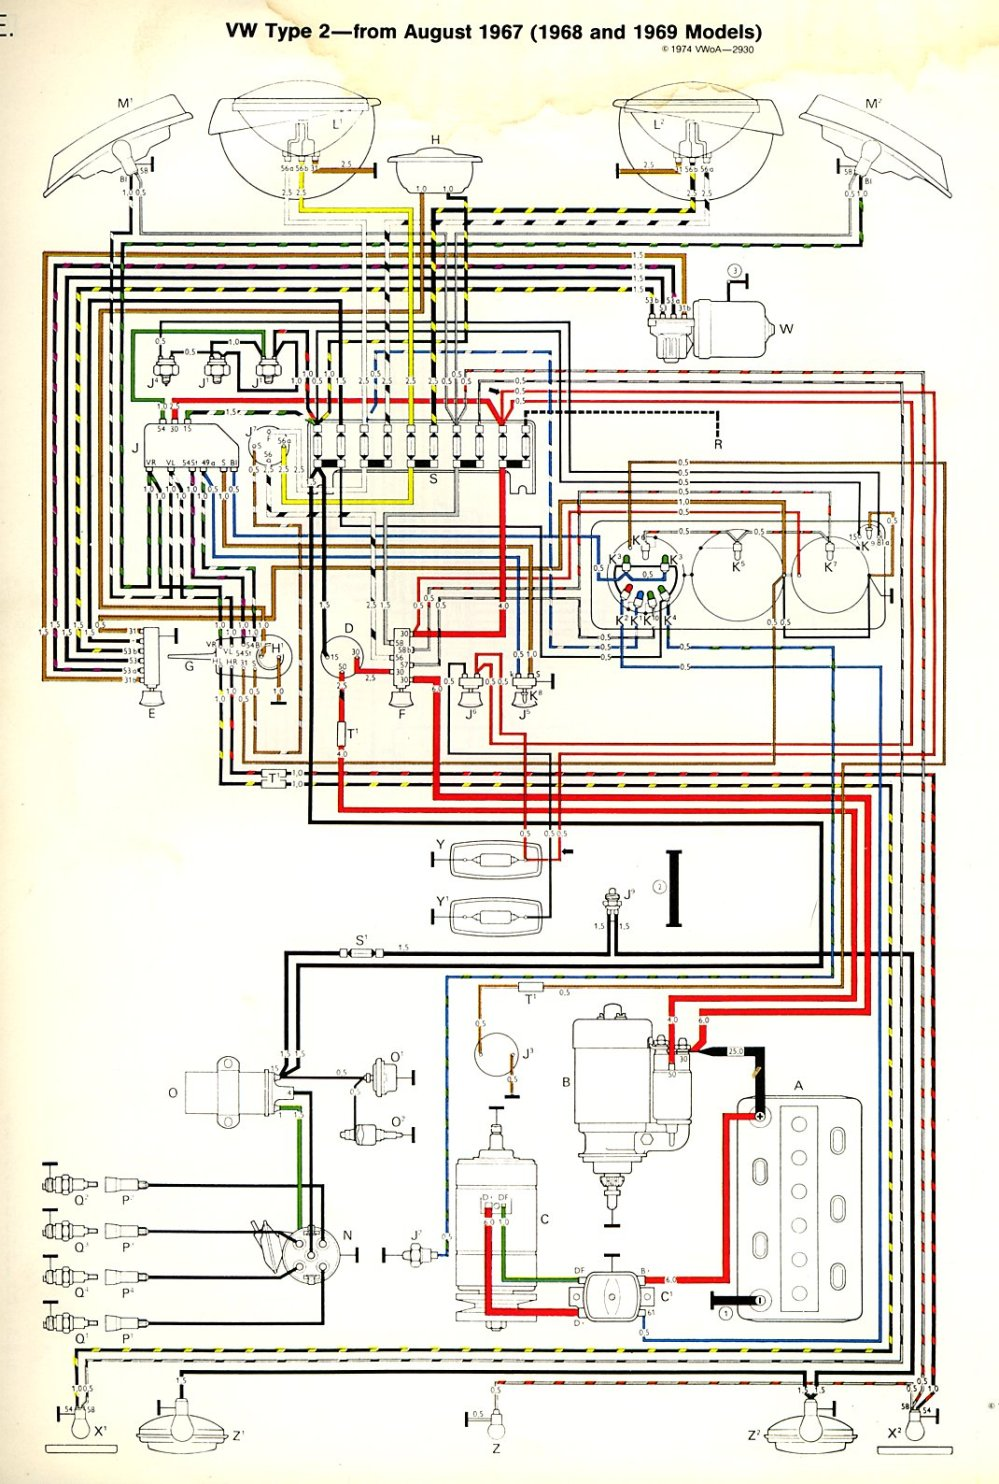 medium resolution of vw bus fuse diagram wiring diagram de1971 vw bus wiring diagram wiring diagrams 70 vw beetle